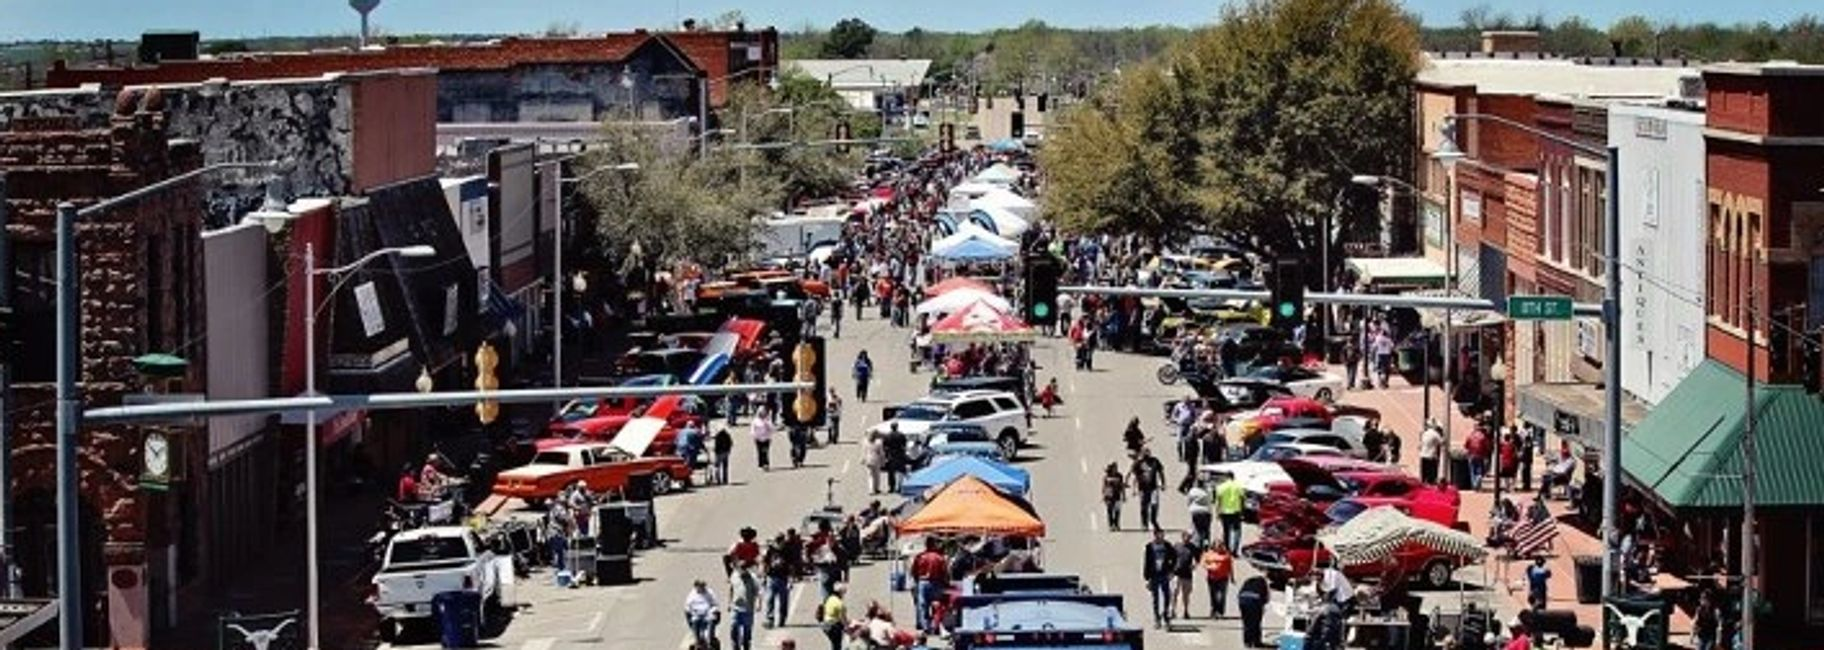 Cruisin' the Chisholm Trail Car Show in Duncan, Oklahoma